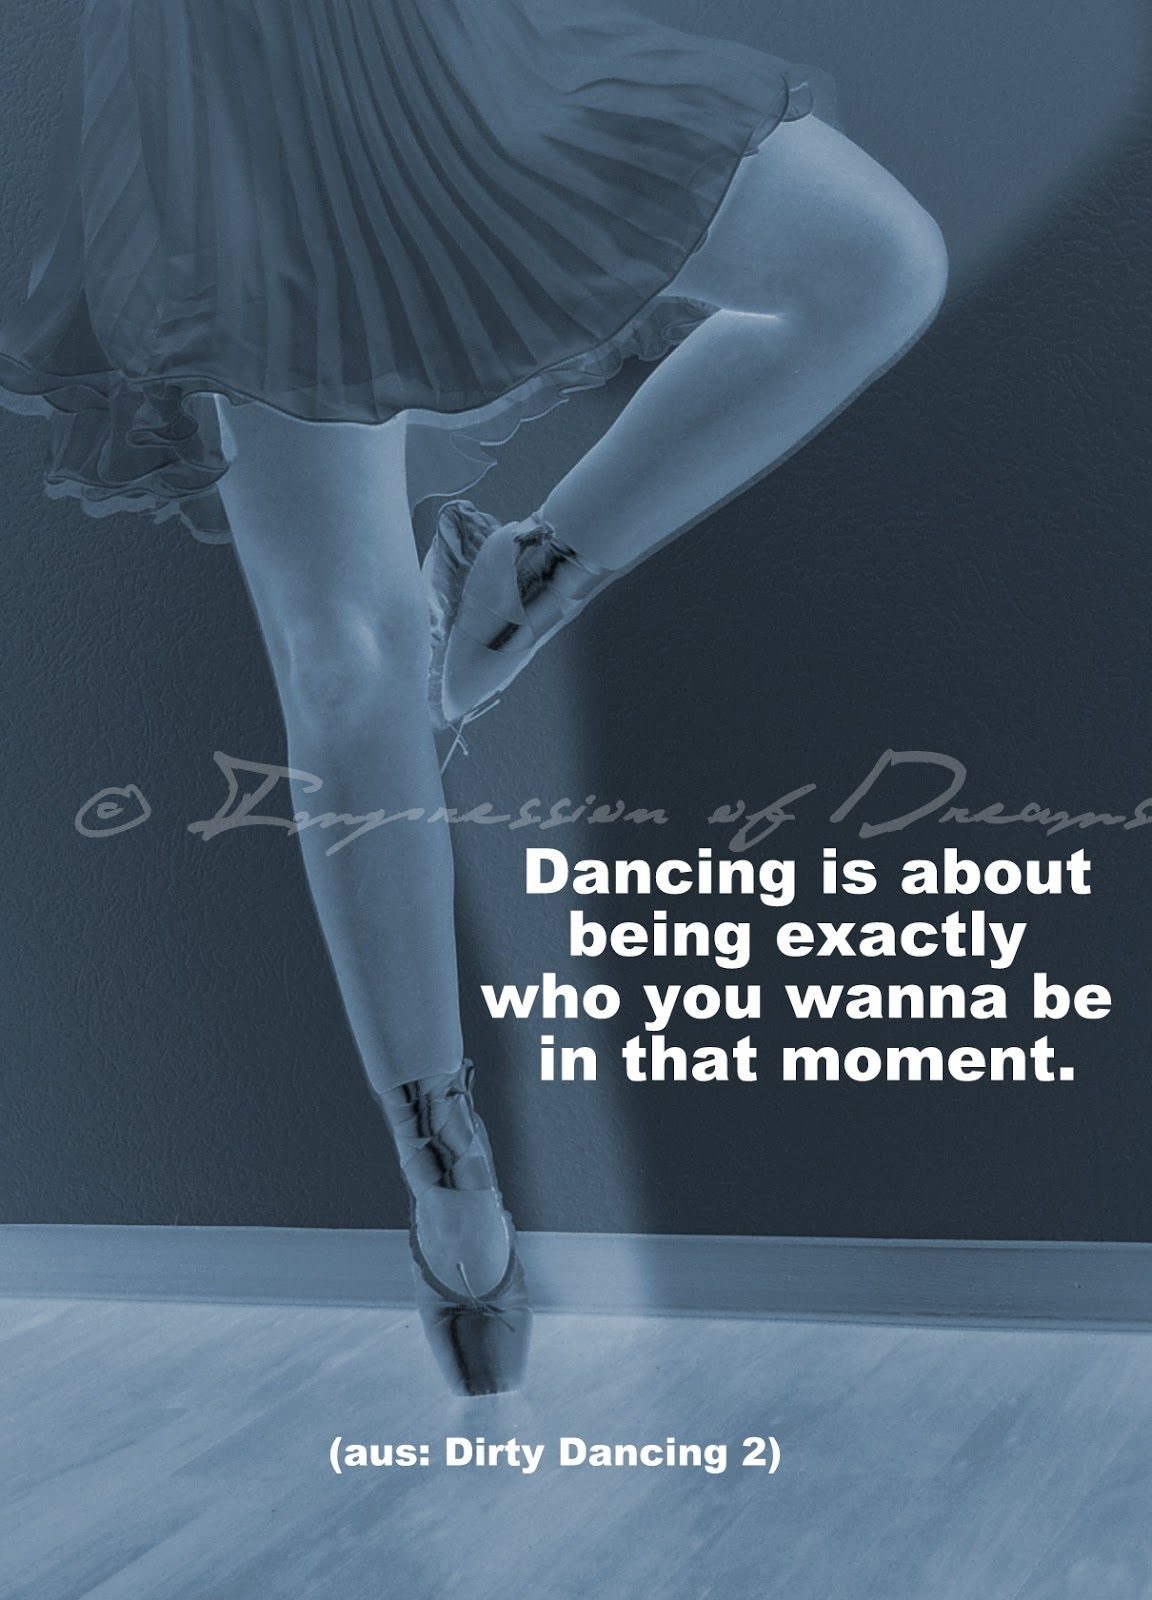 Dancing is about being exactly who you wanna be in that moment